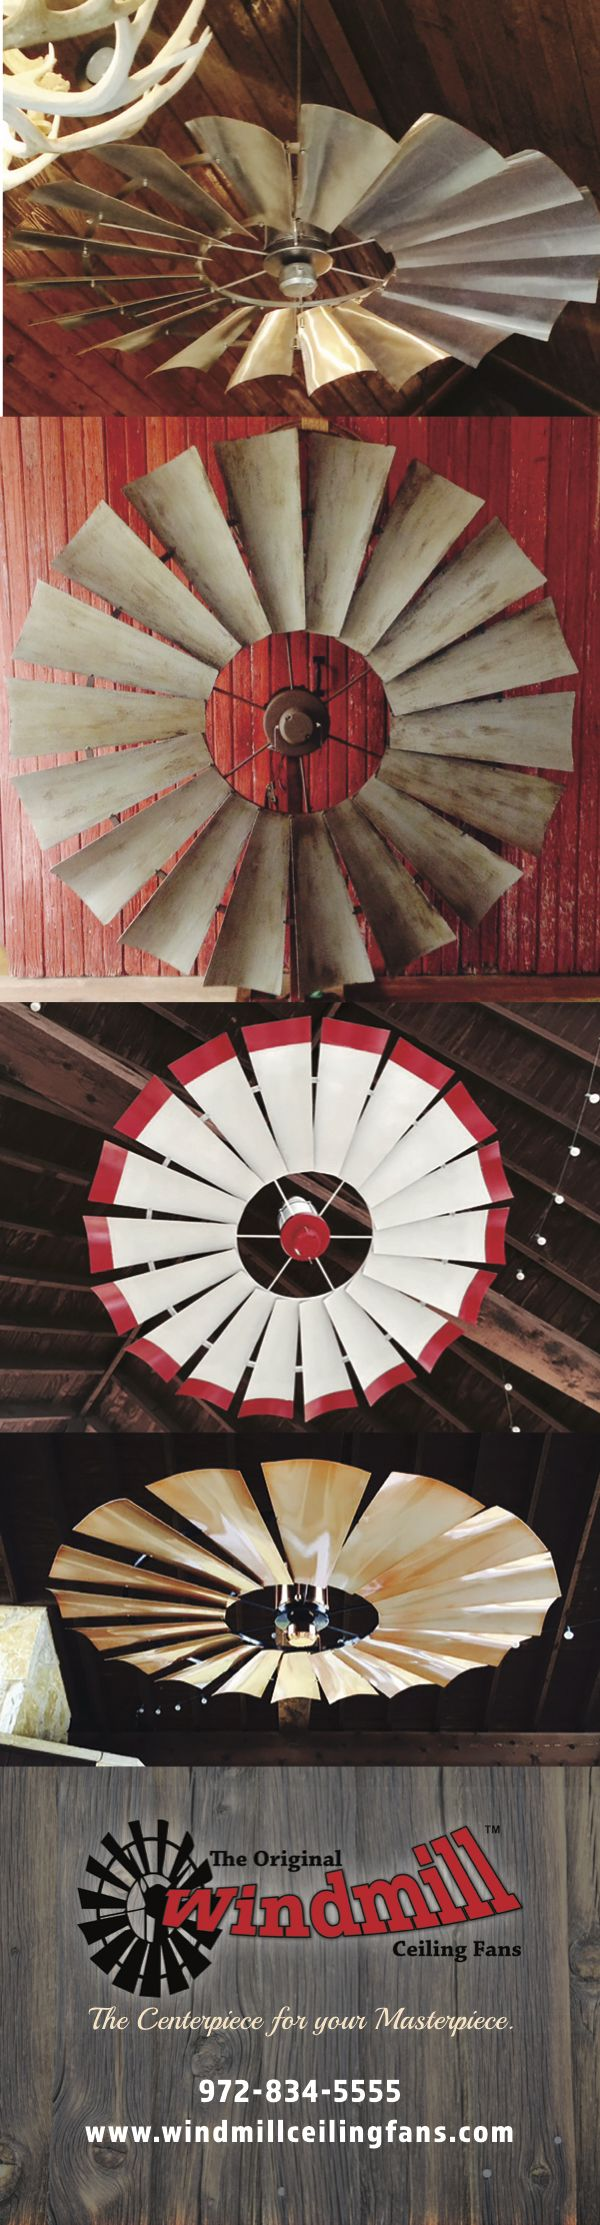 "Found it!  Woohooo Custom Windmill Ceiling Fans. Awesome!  54"" to 66"" diameter with custom finishes."